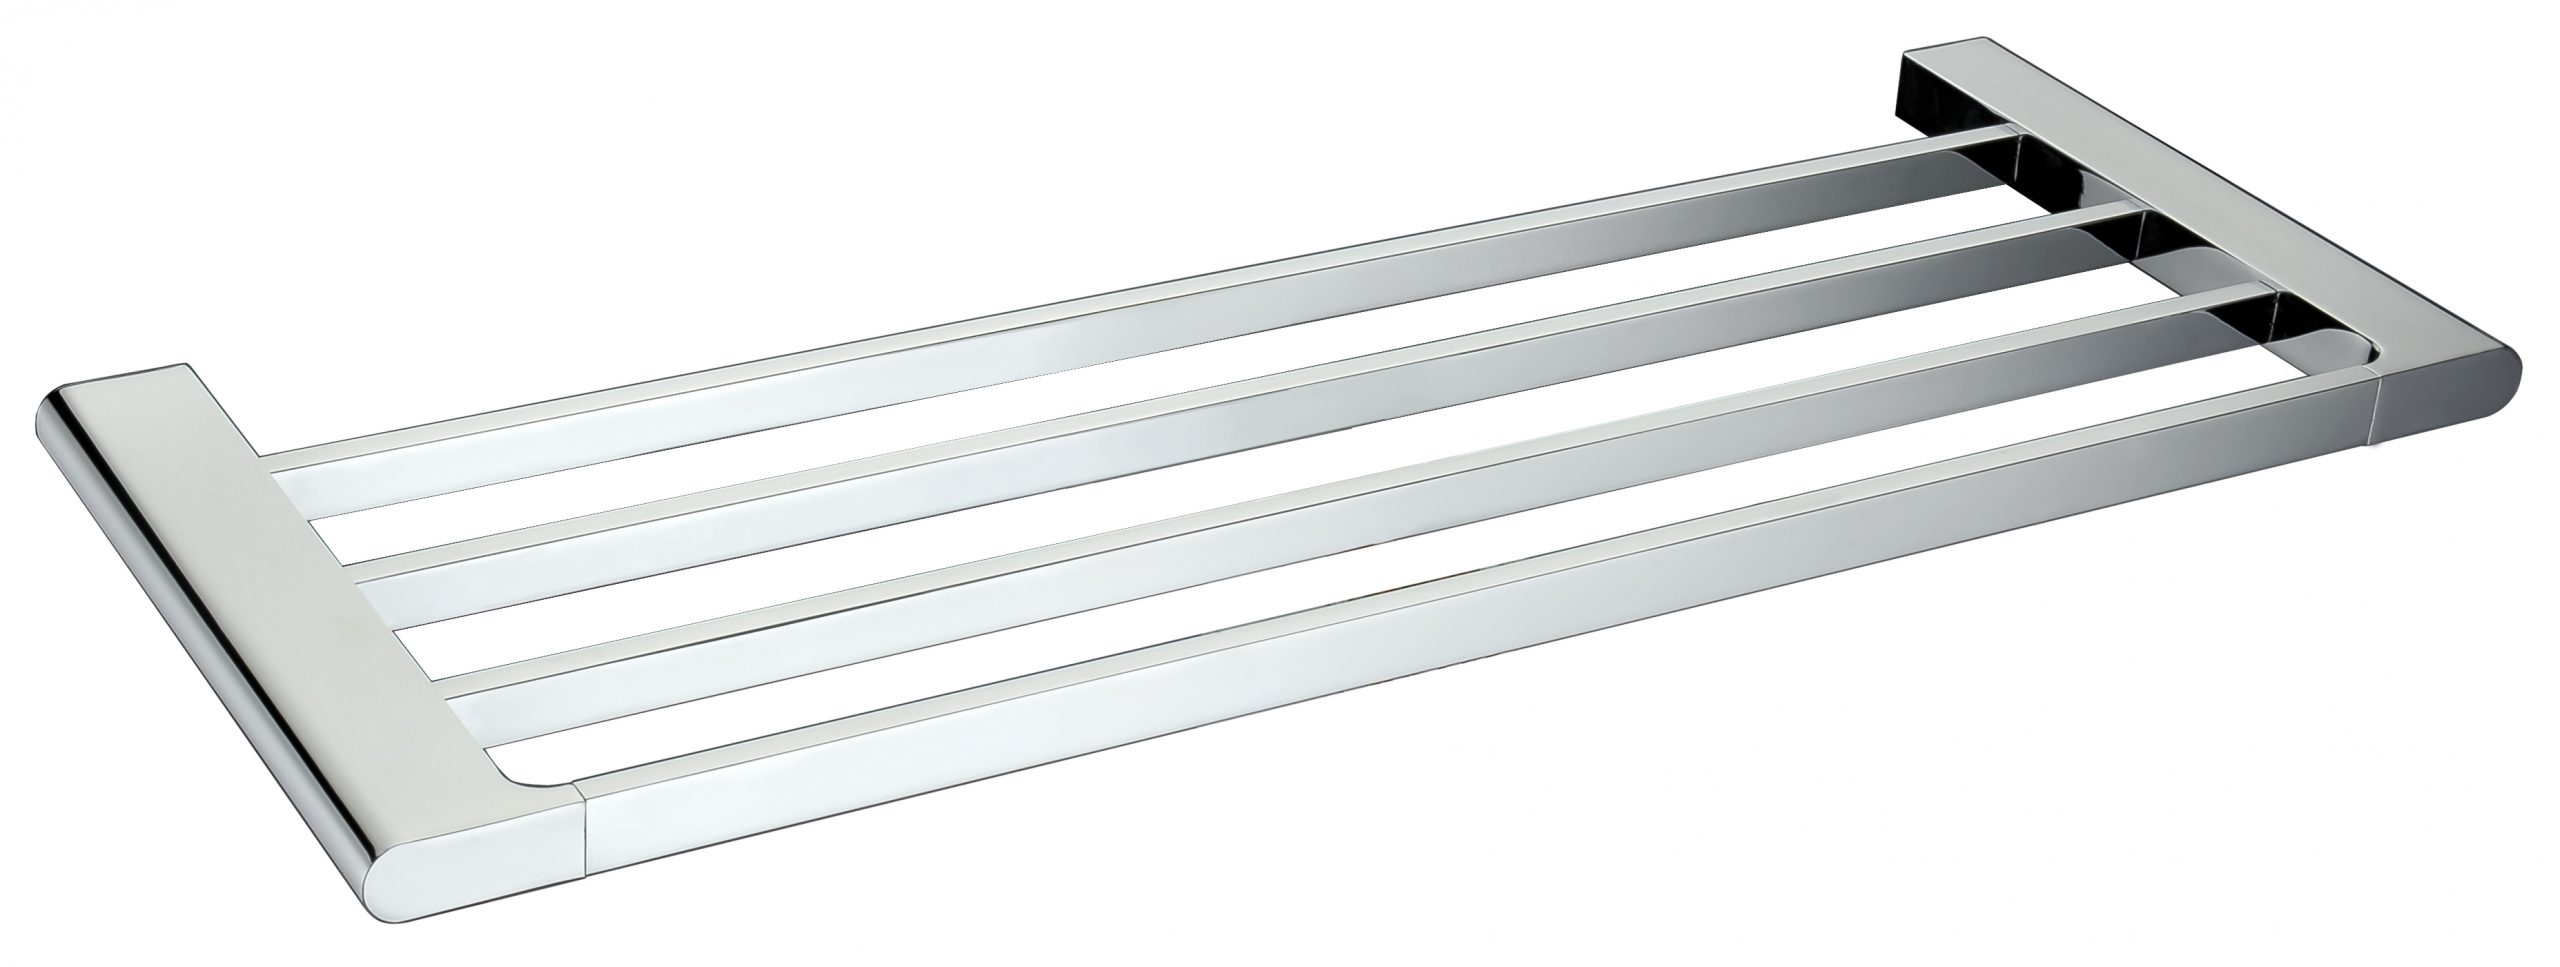 Kompakt Towel Shelf-Chrome